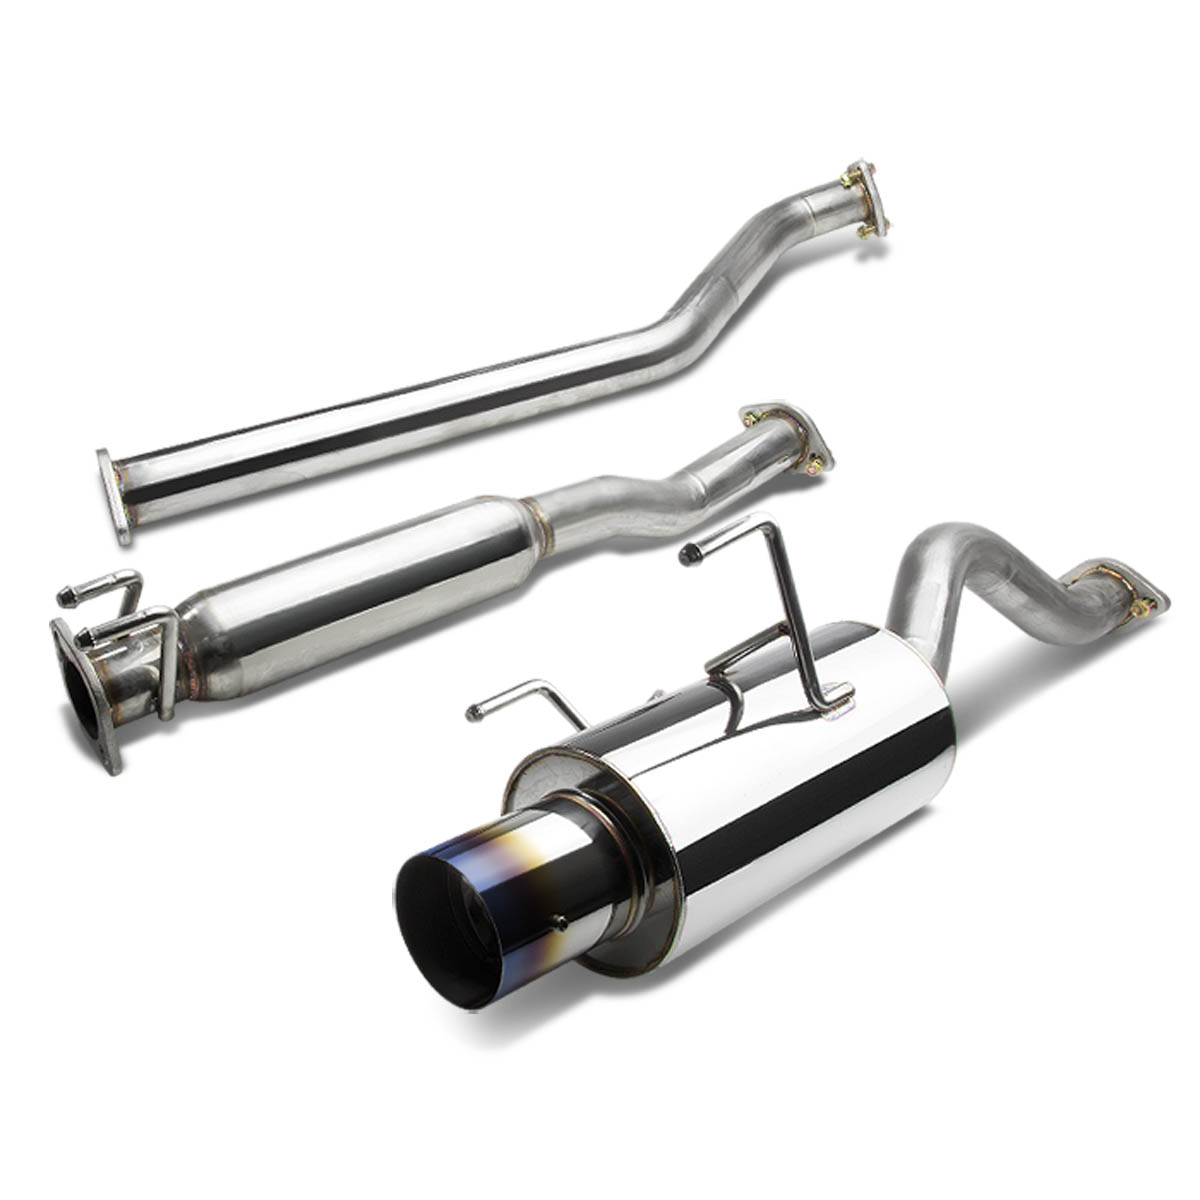 for 2002 to 2006 acura rsx catback exhaust system 4 burn tip muffler k20 type s dc5 03 04 05